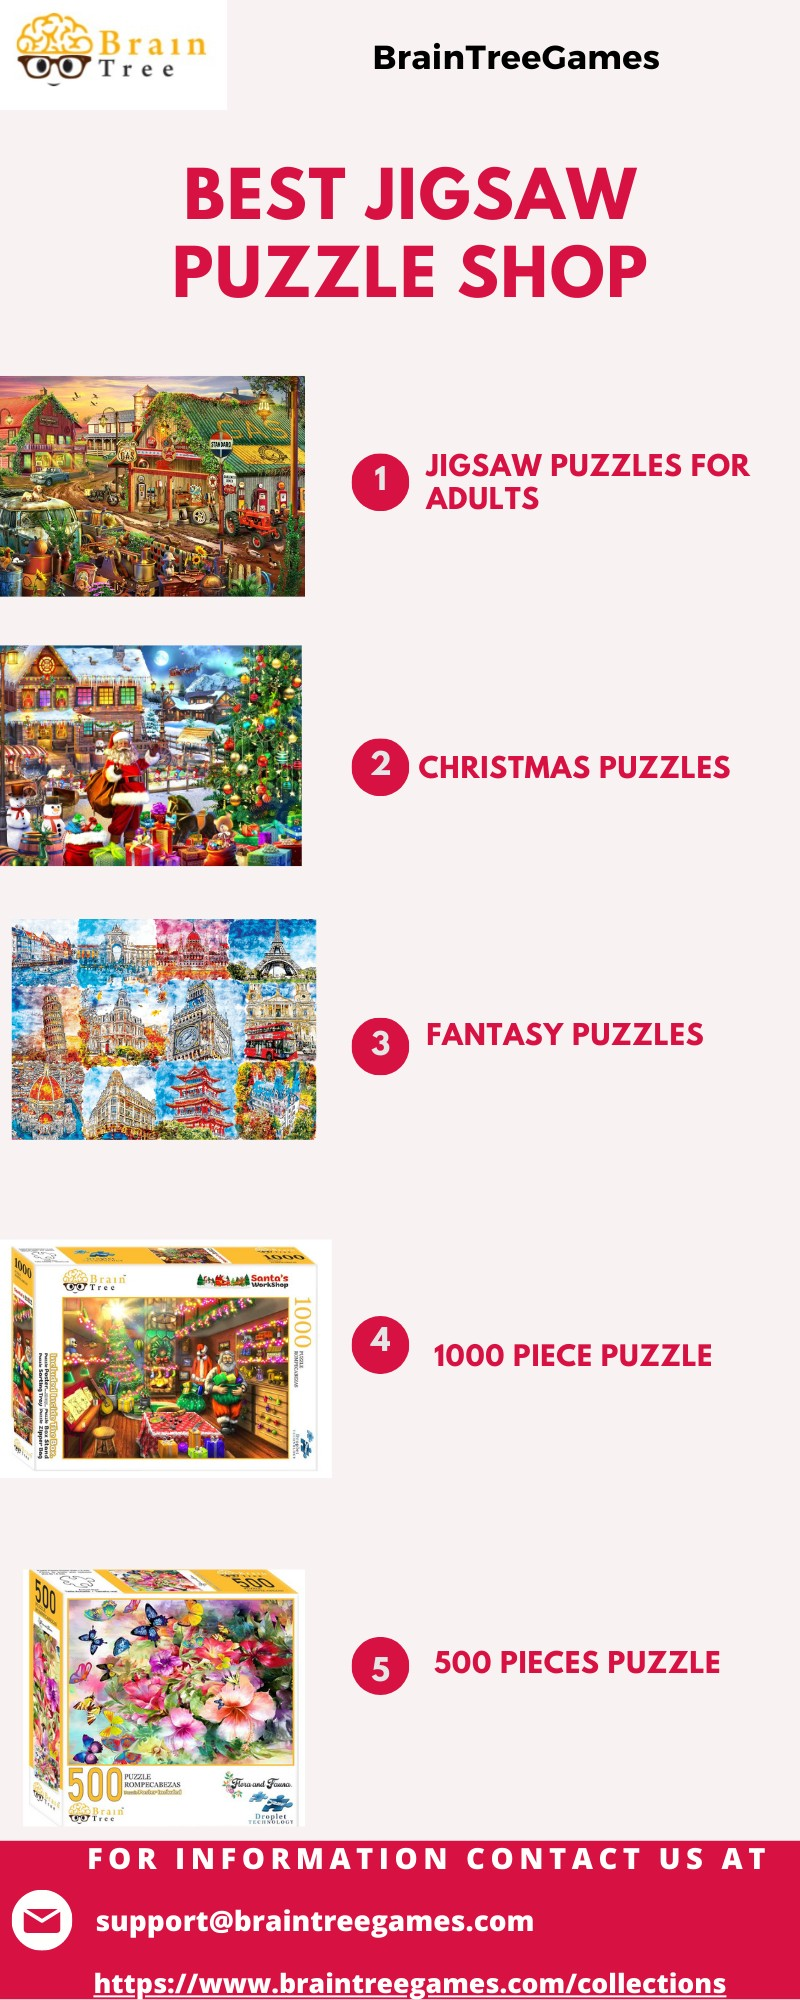 Top Jigsaw Puzzle Store in America